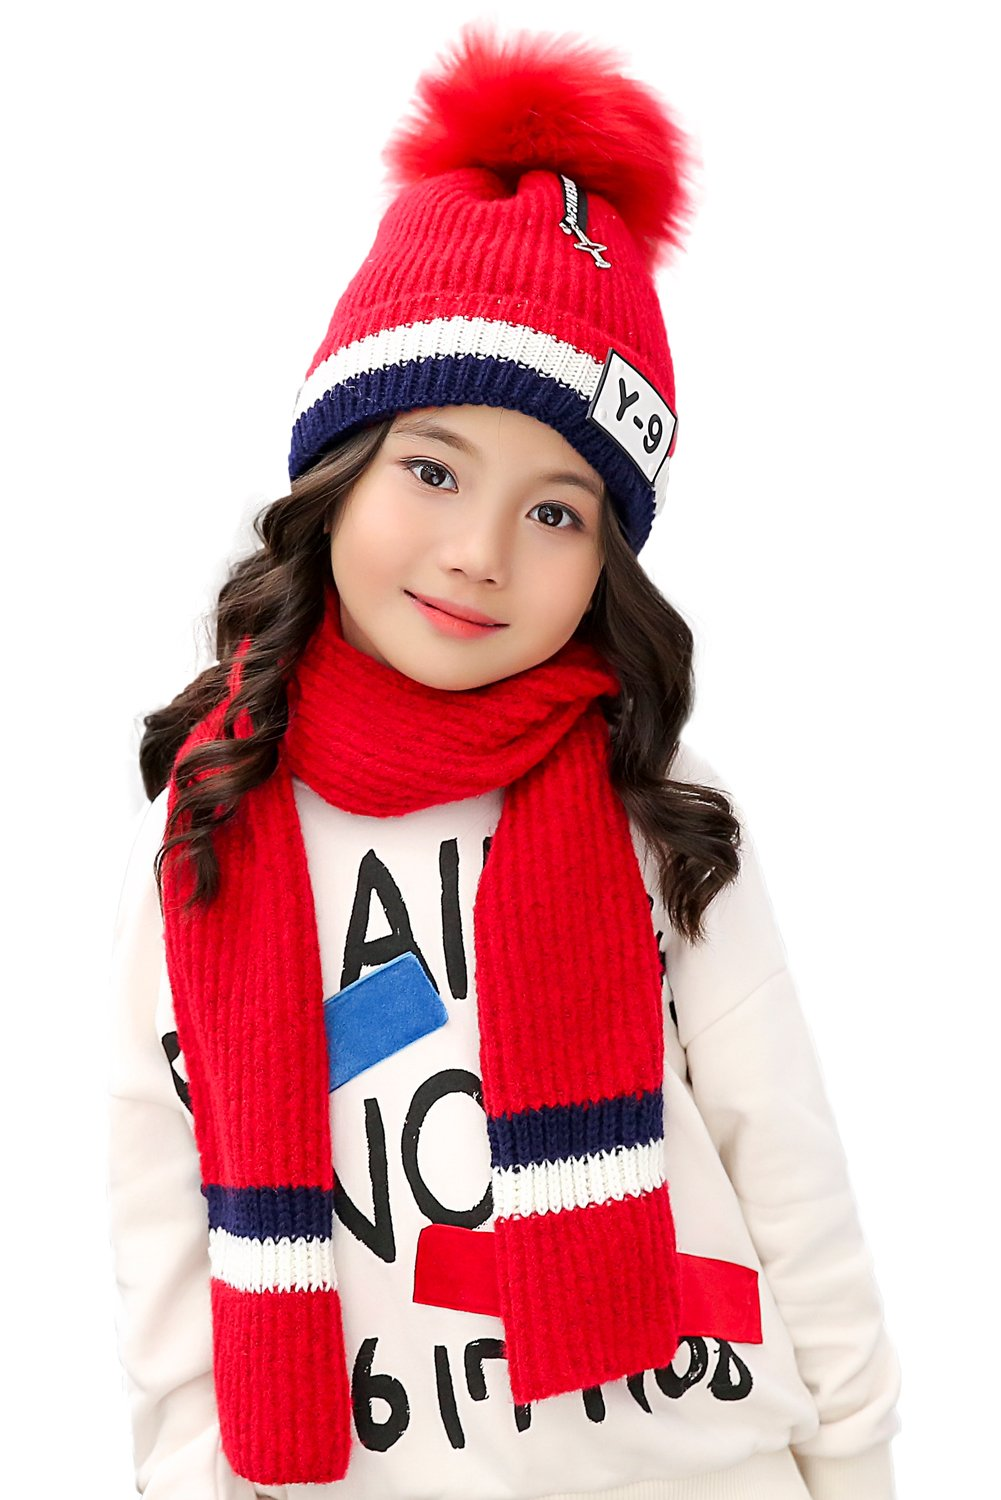 Kids Beanie Pom Hat and Knit Scarf 2pcs Set for Winter Warm Girls Boys 3-8 Years (Black) CA-XBF-HAT-A-BLACK